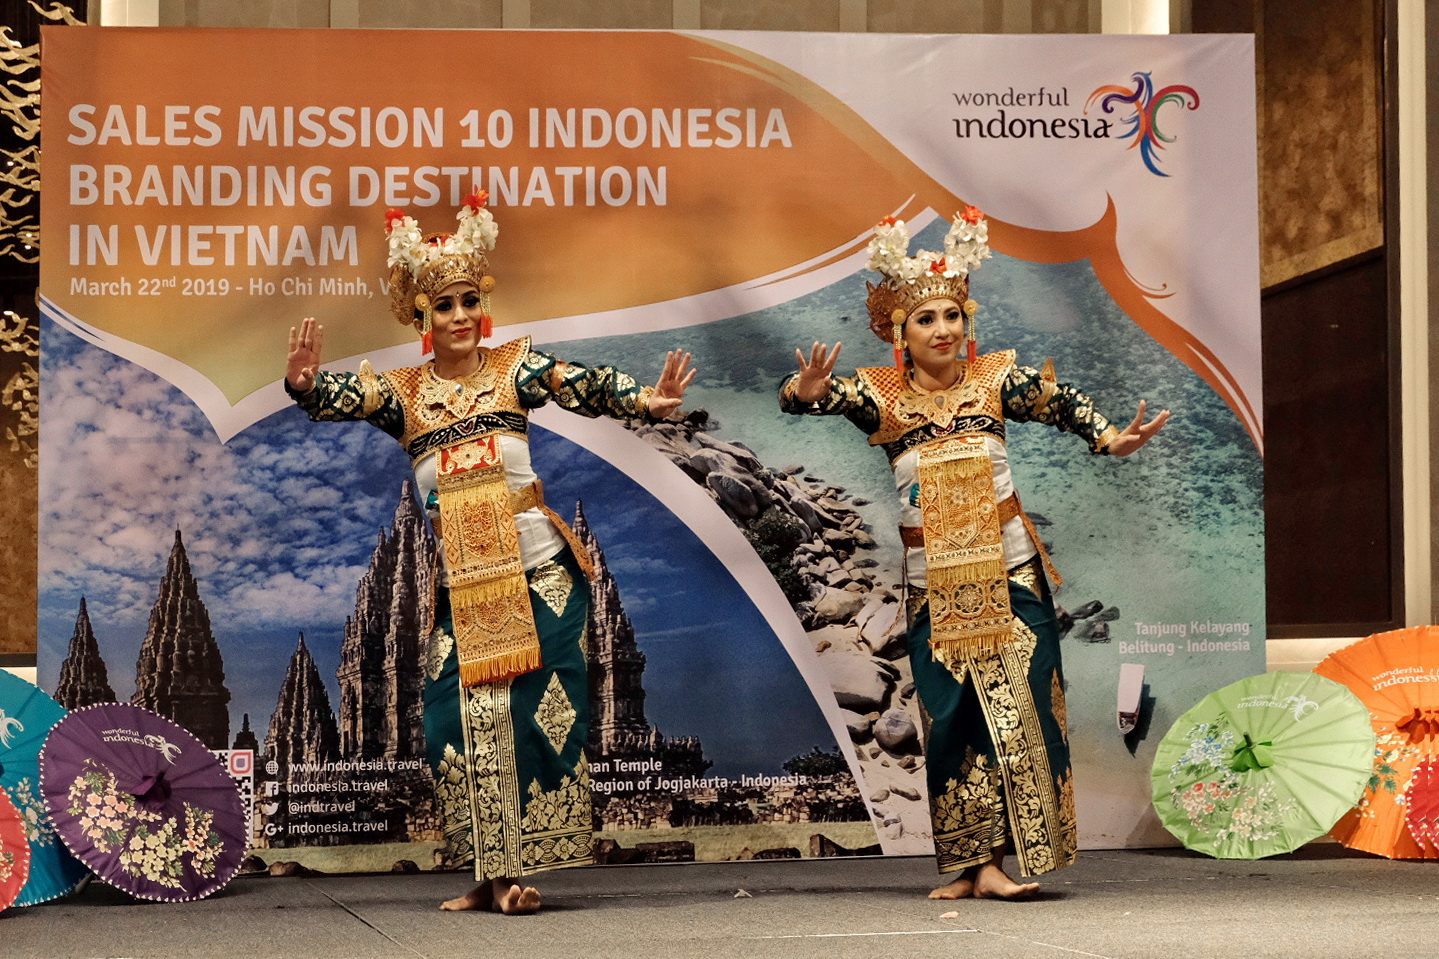 Indonesia targets 100,000 tourist arrivals from Vietnam in 2019